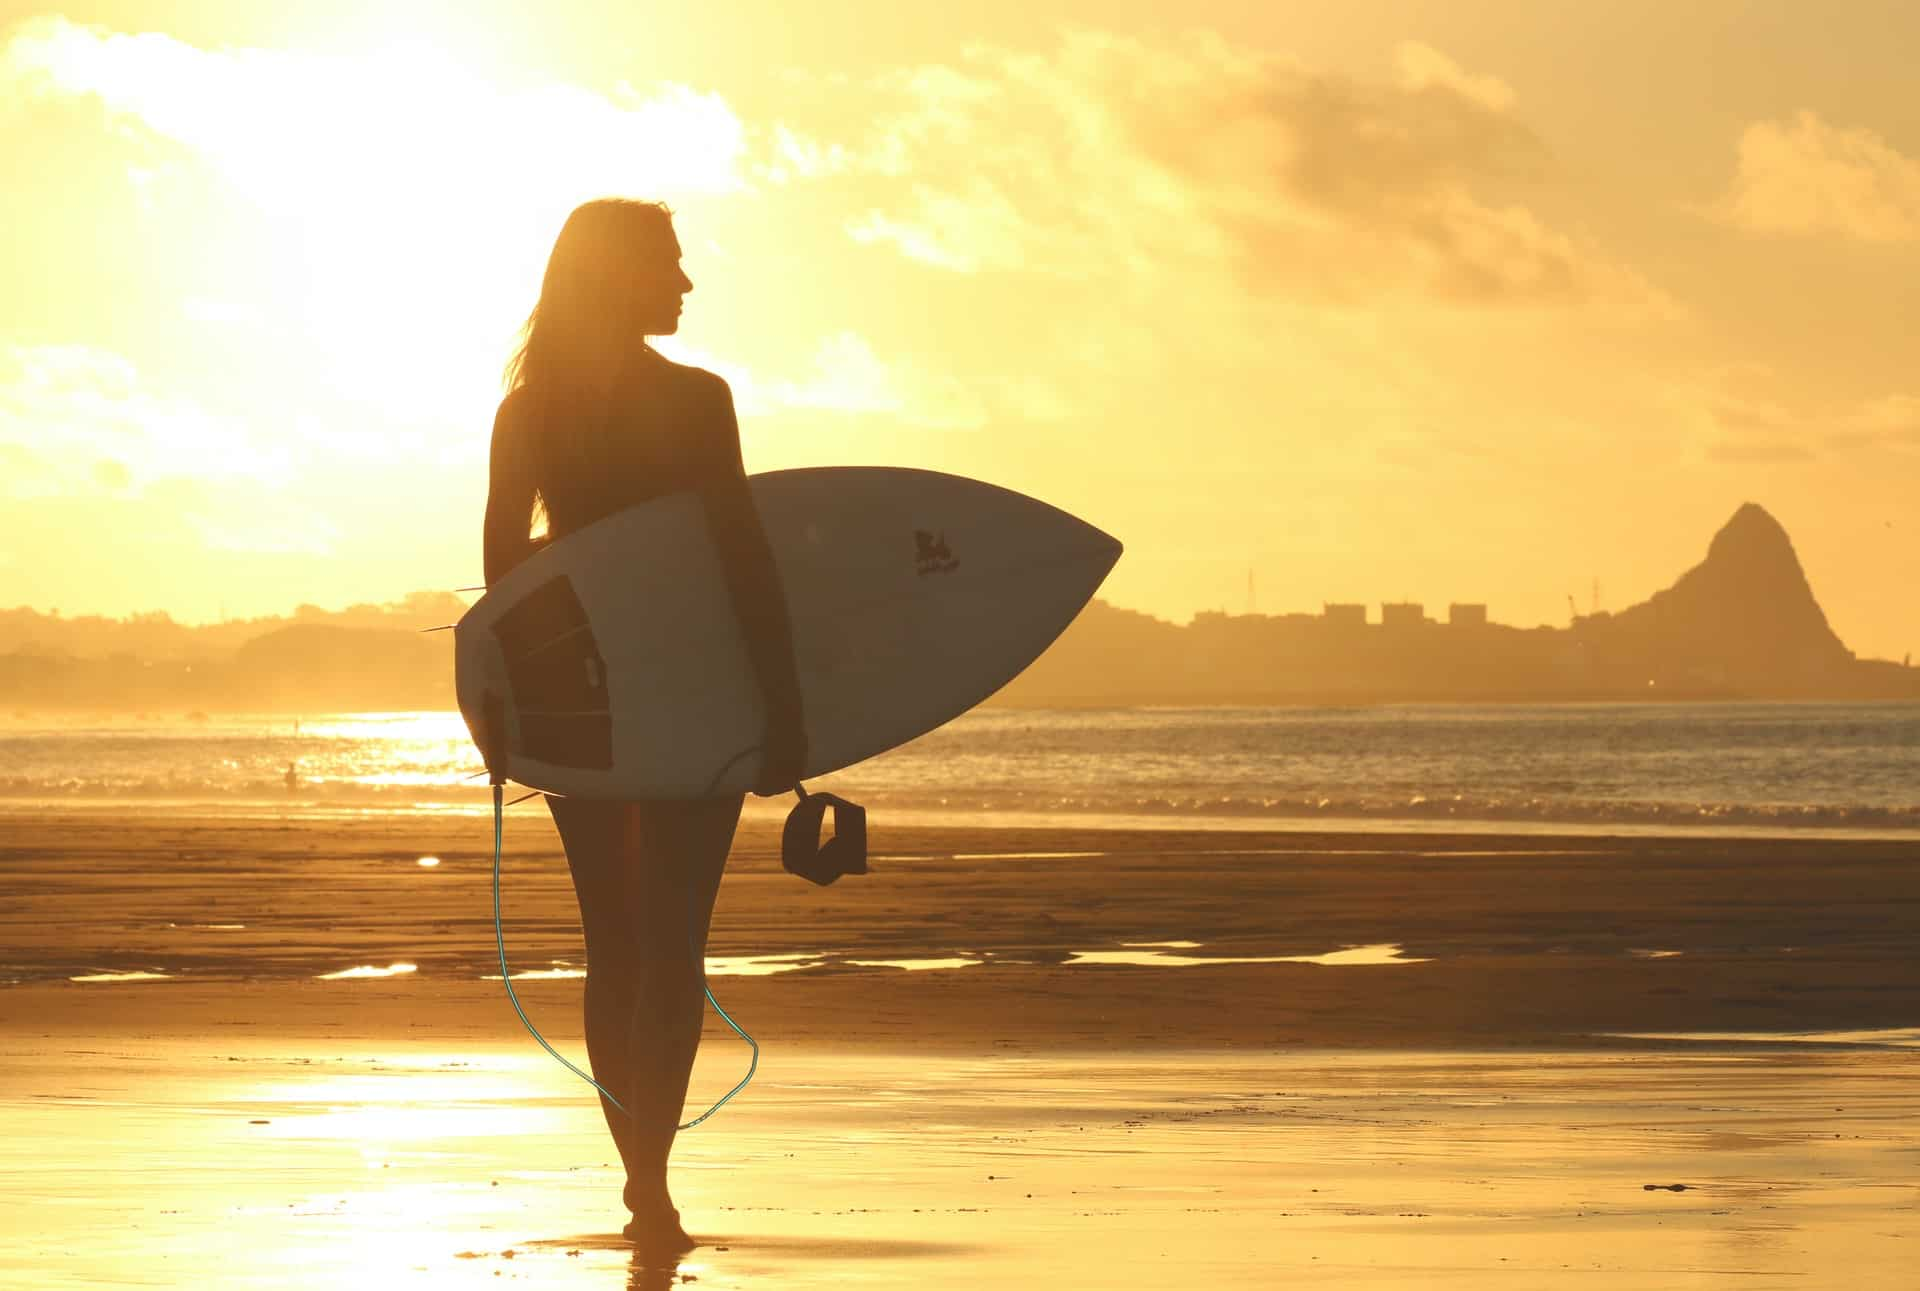 The 25 Best Surfing Beaches in America